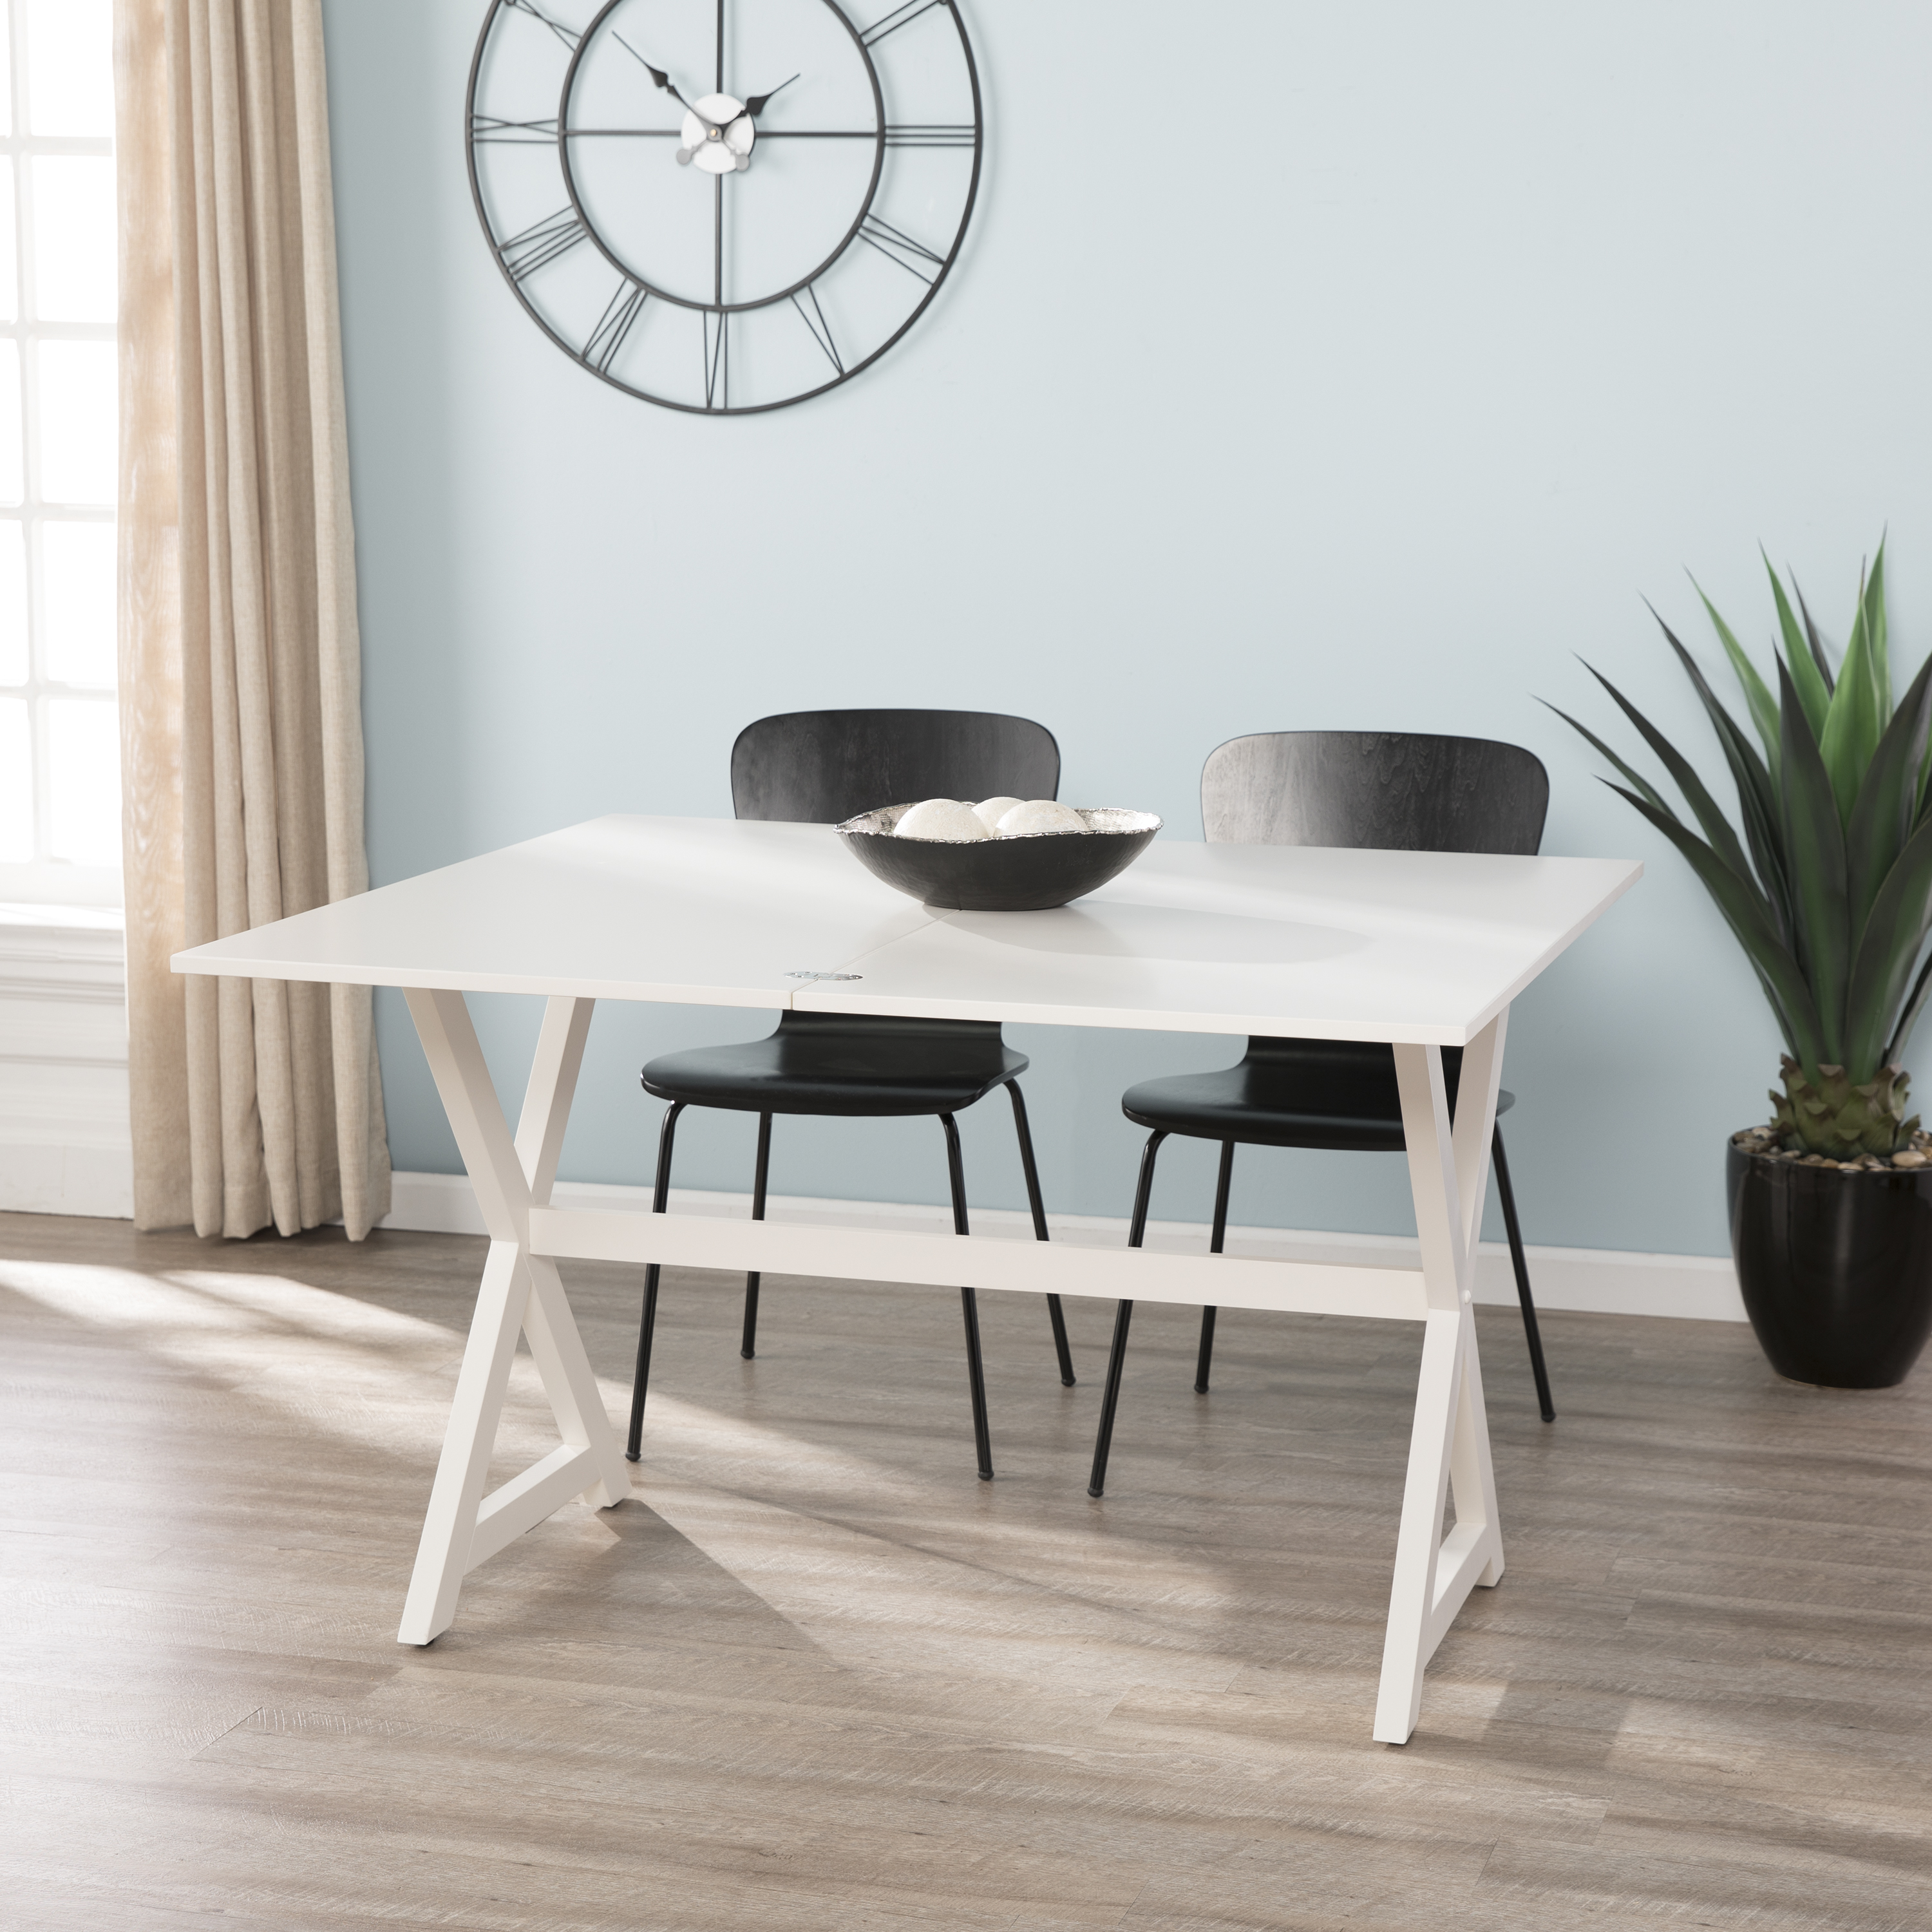 Cagor Convertible Console To Dining Table, Coastal, White